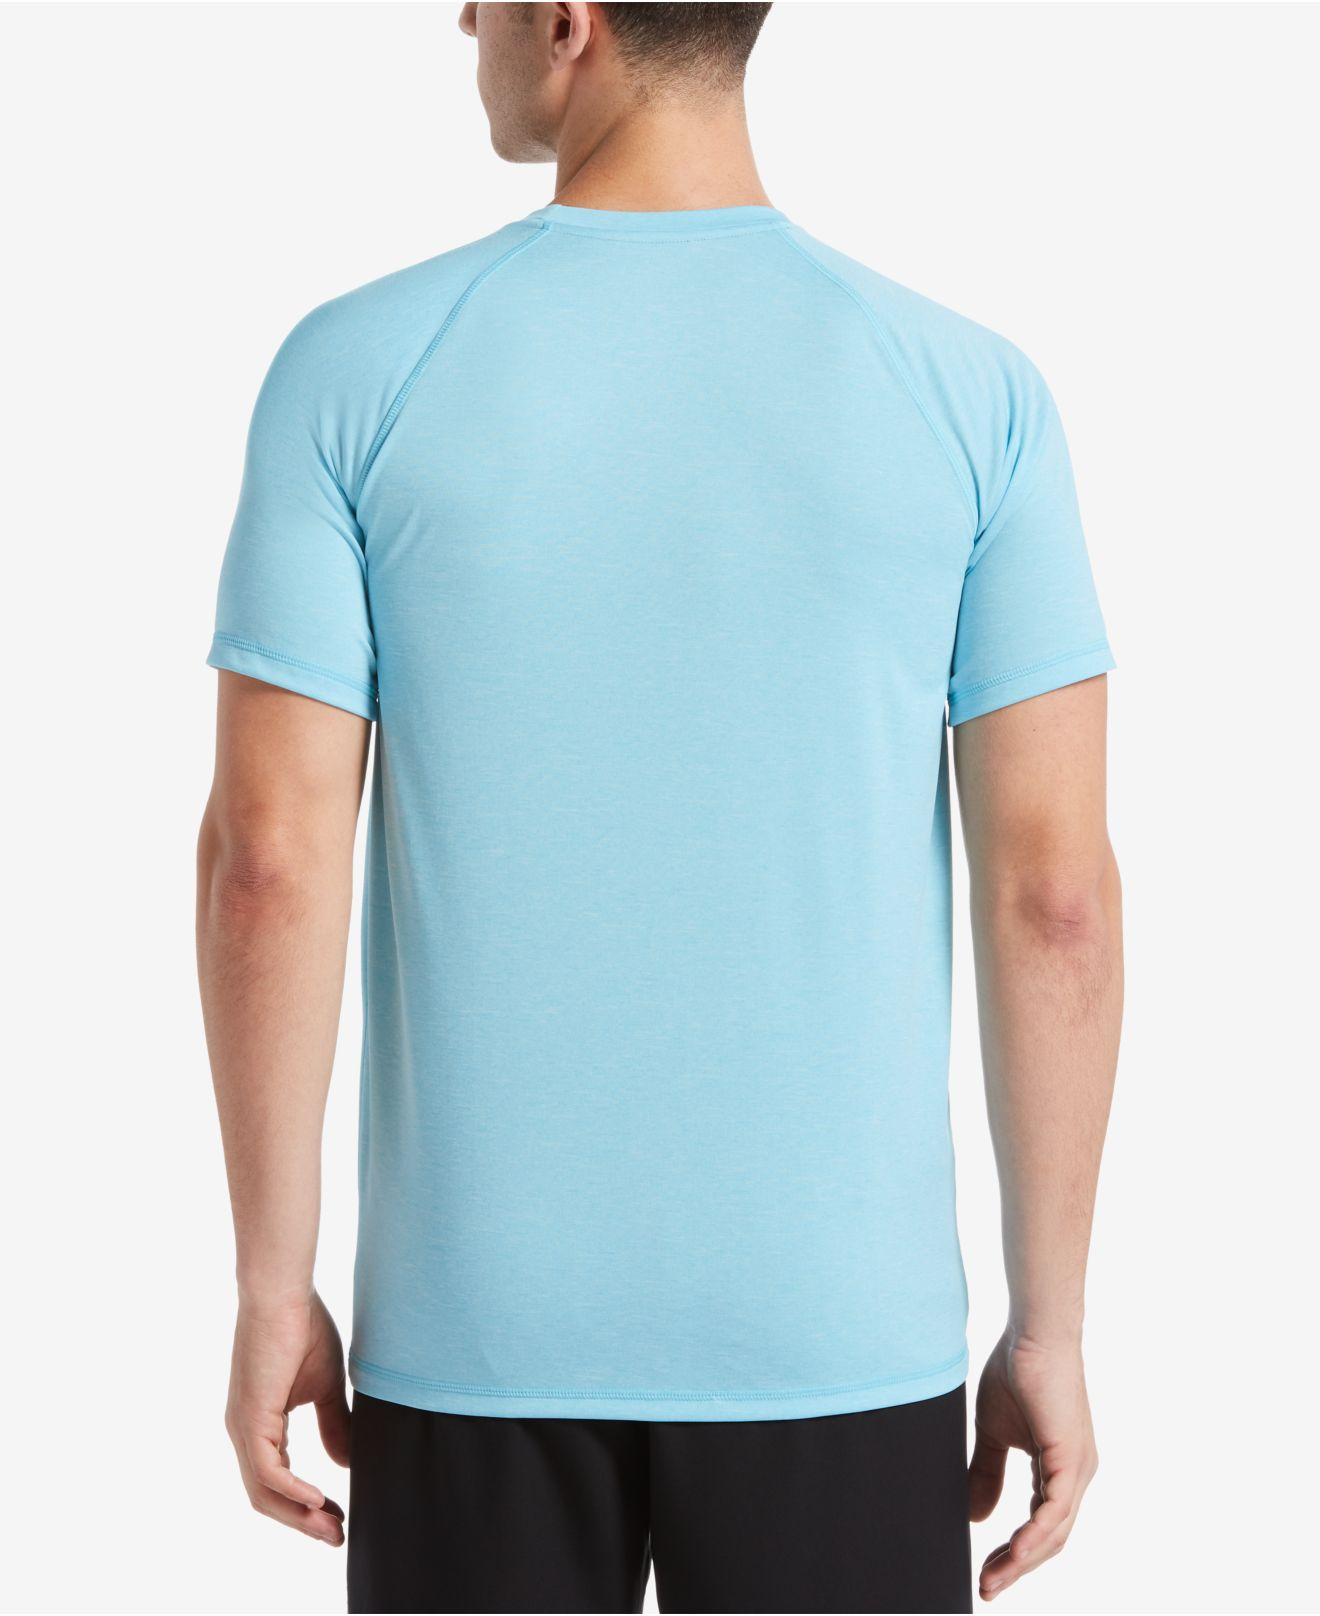 eb3b1cd5 Lyst - Nike Big & Tall Dri-fit Heather Hydroguard Upf 40 Rashguard Swim Tee  in Blue for Men - Save 36%